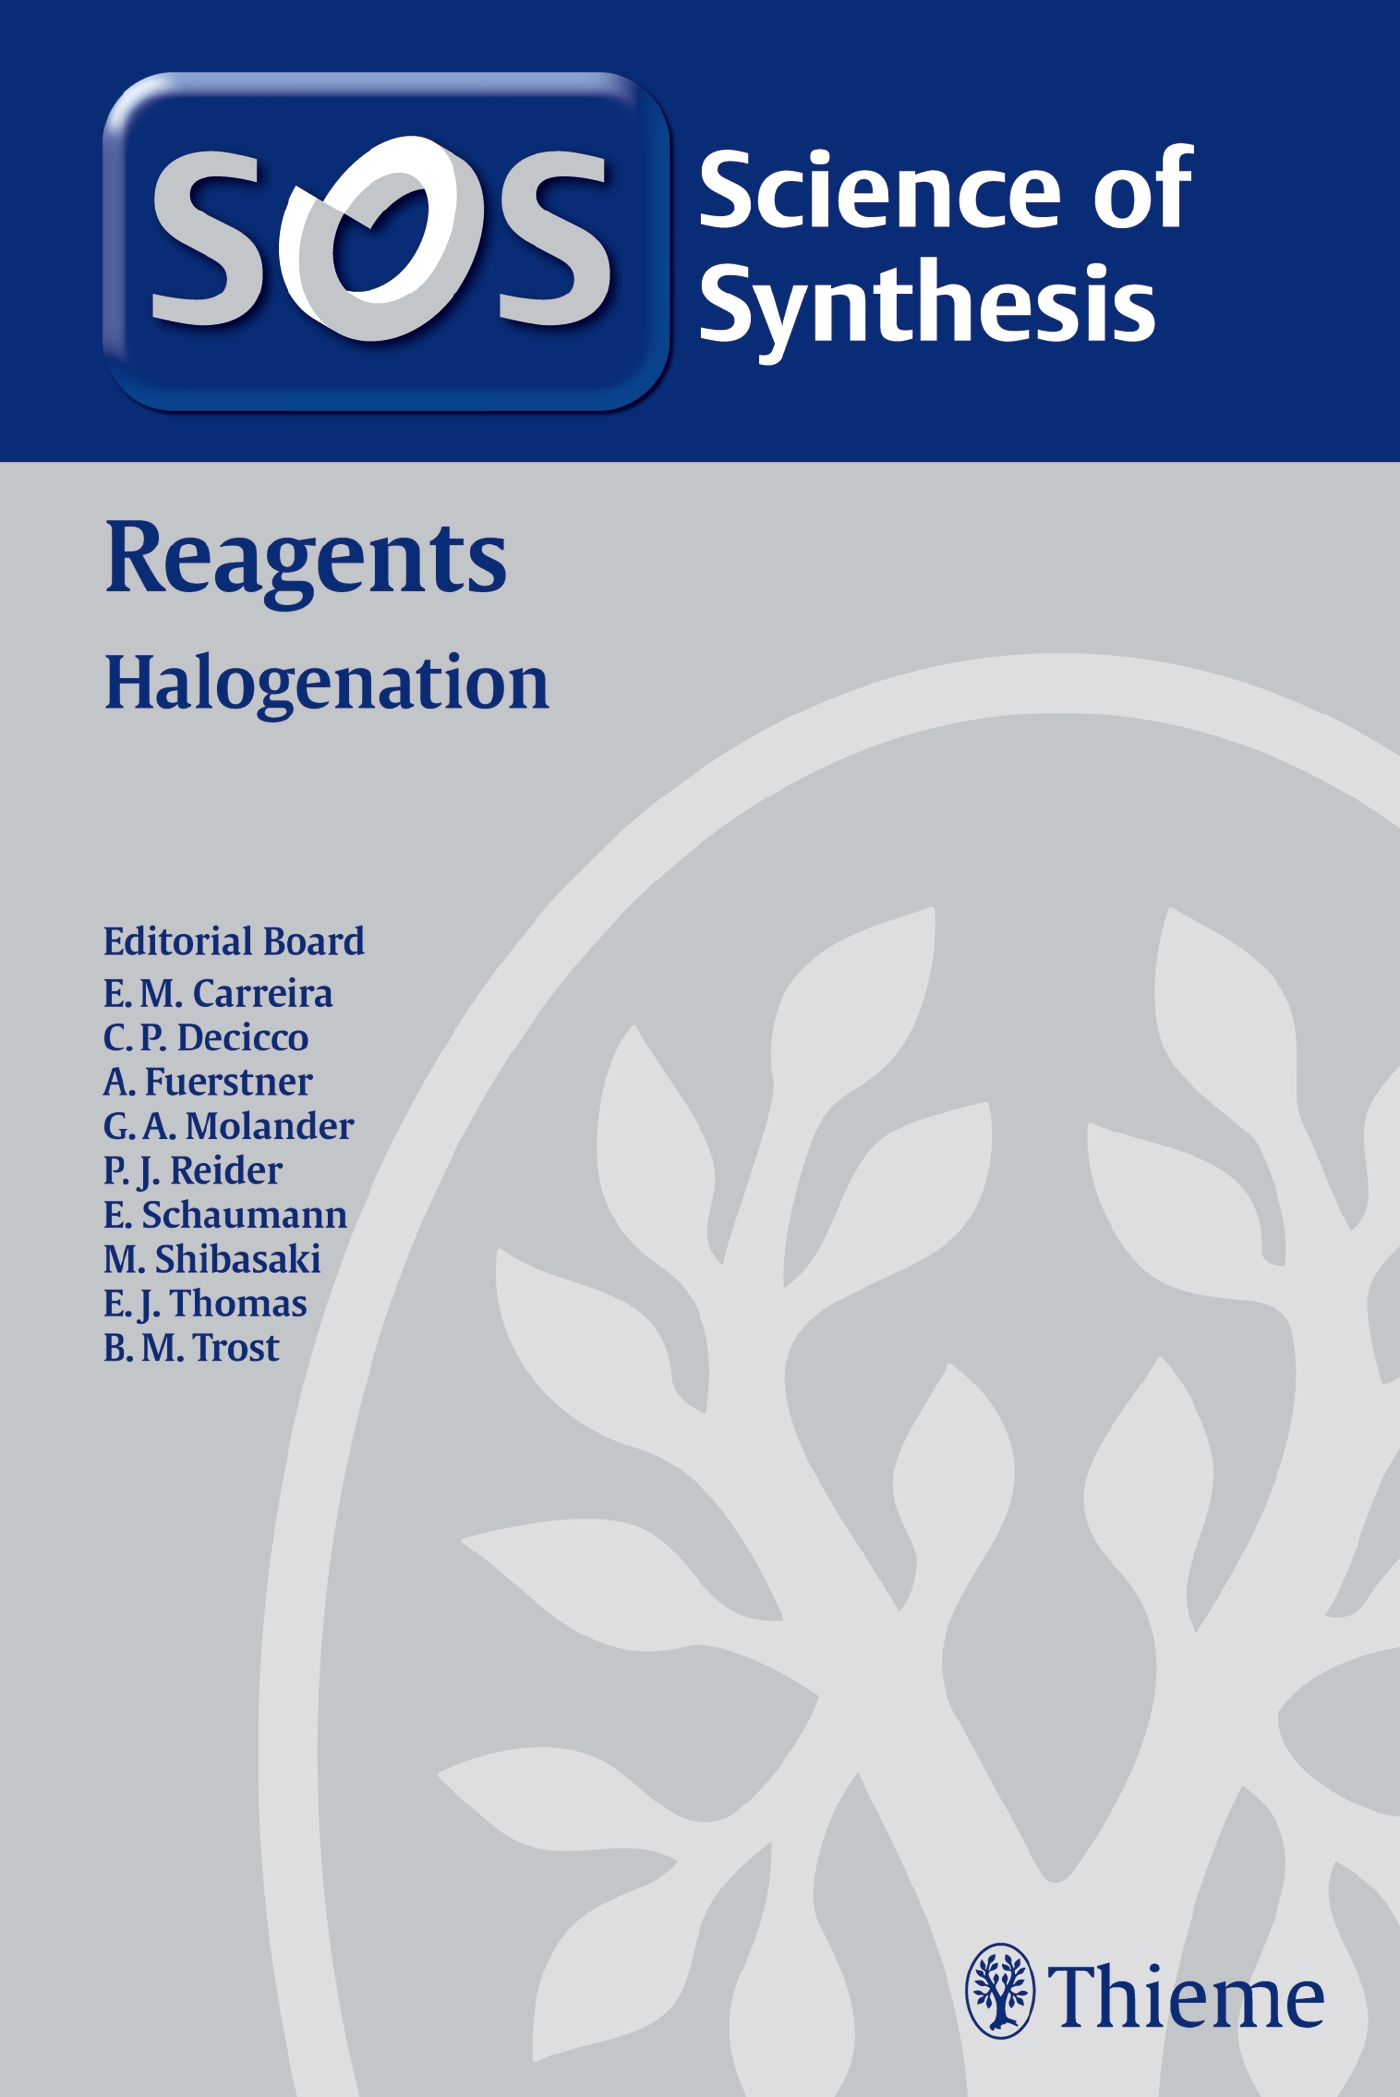 Science of Synthesis Reagents: Halogenation